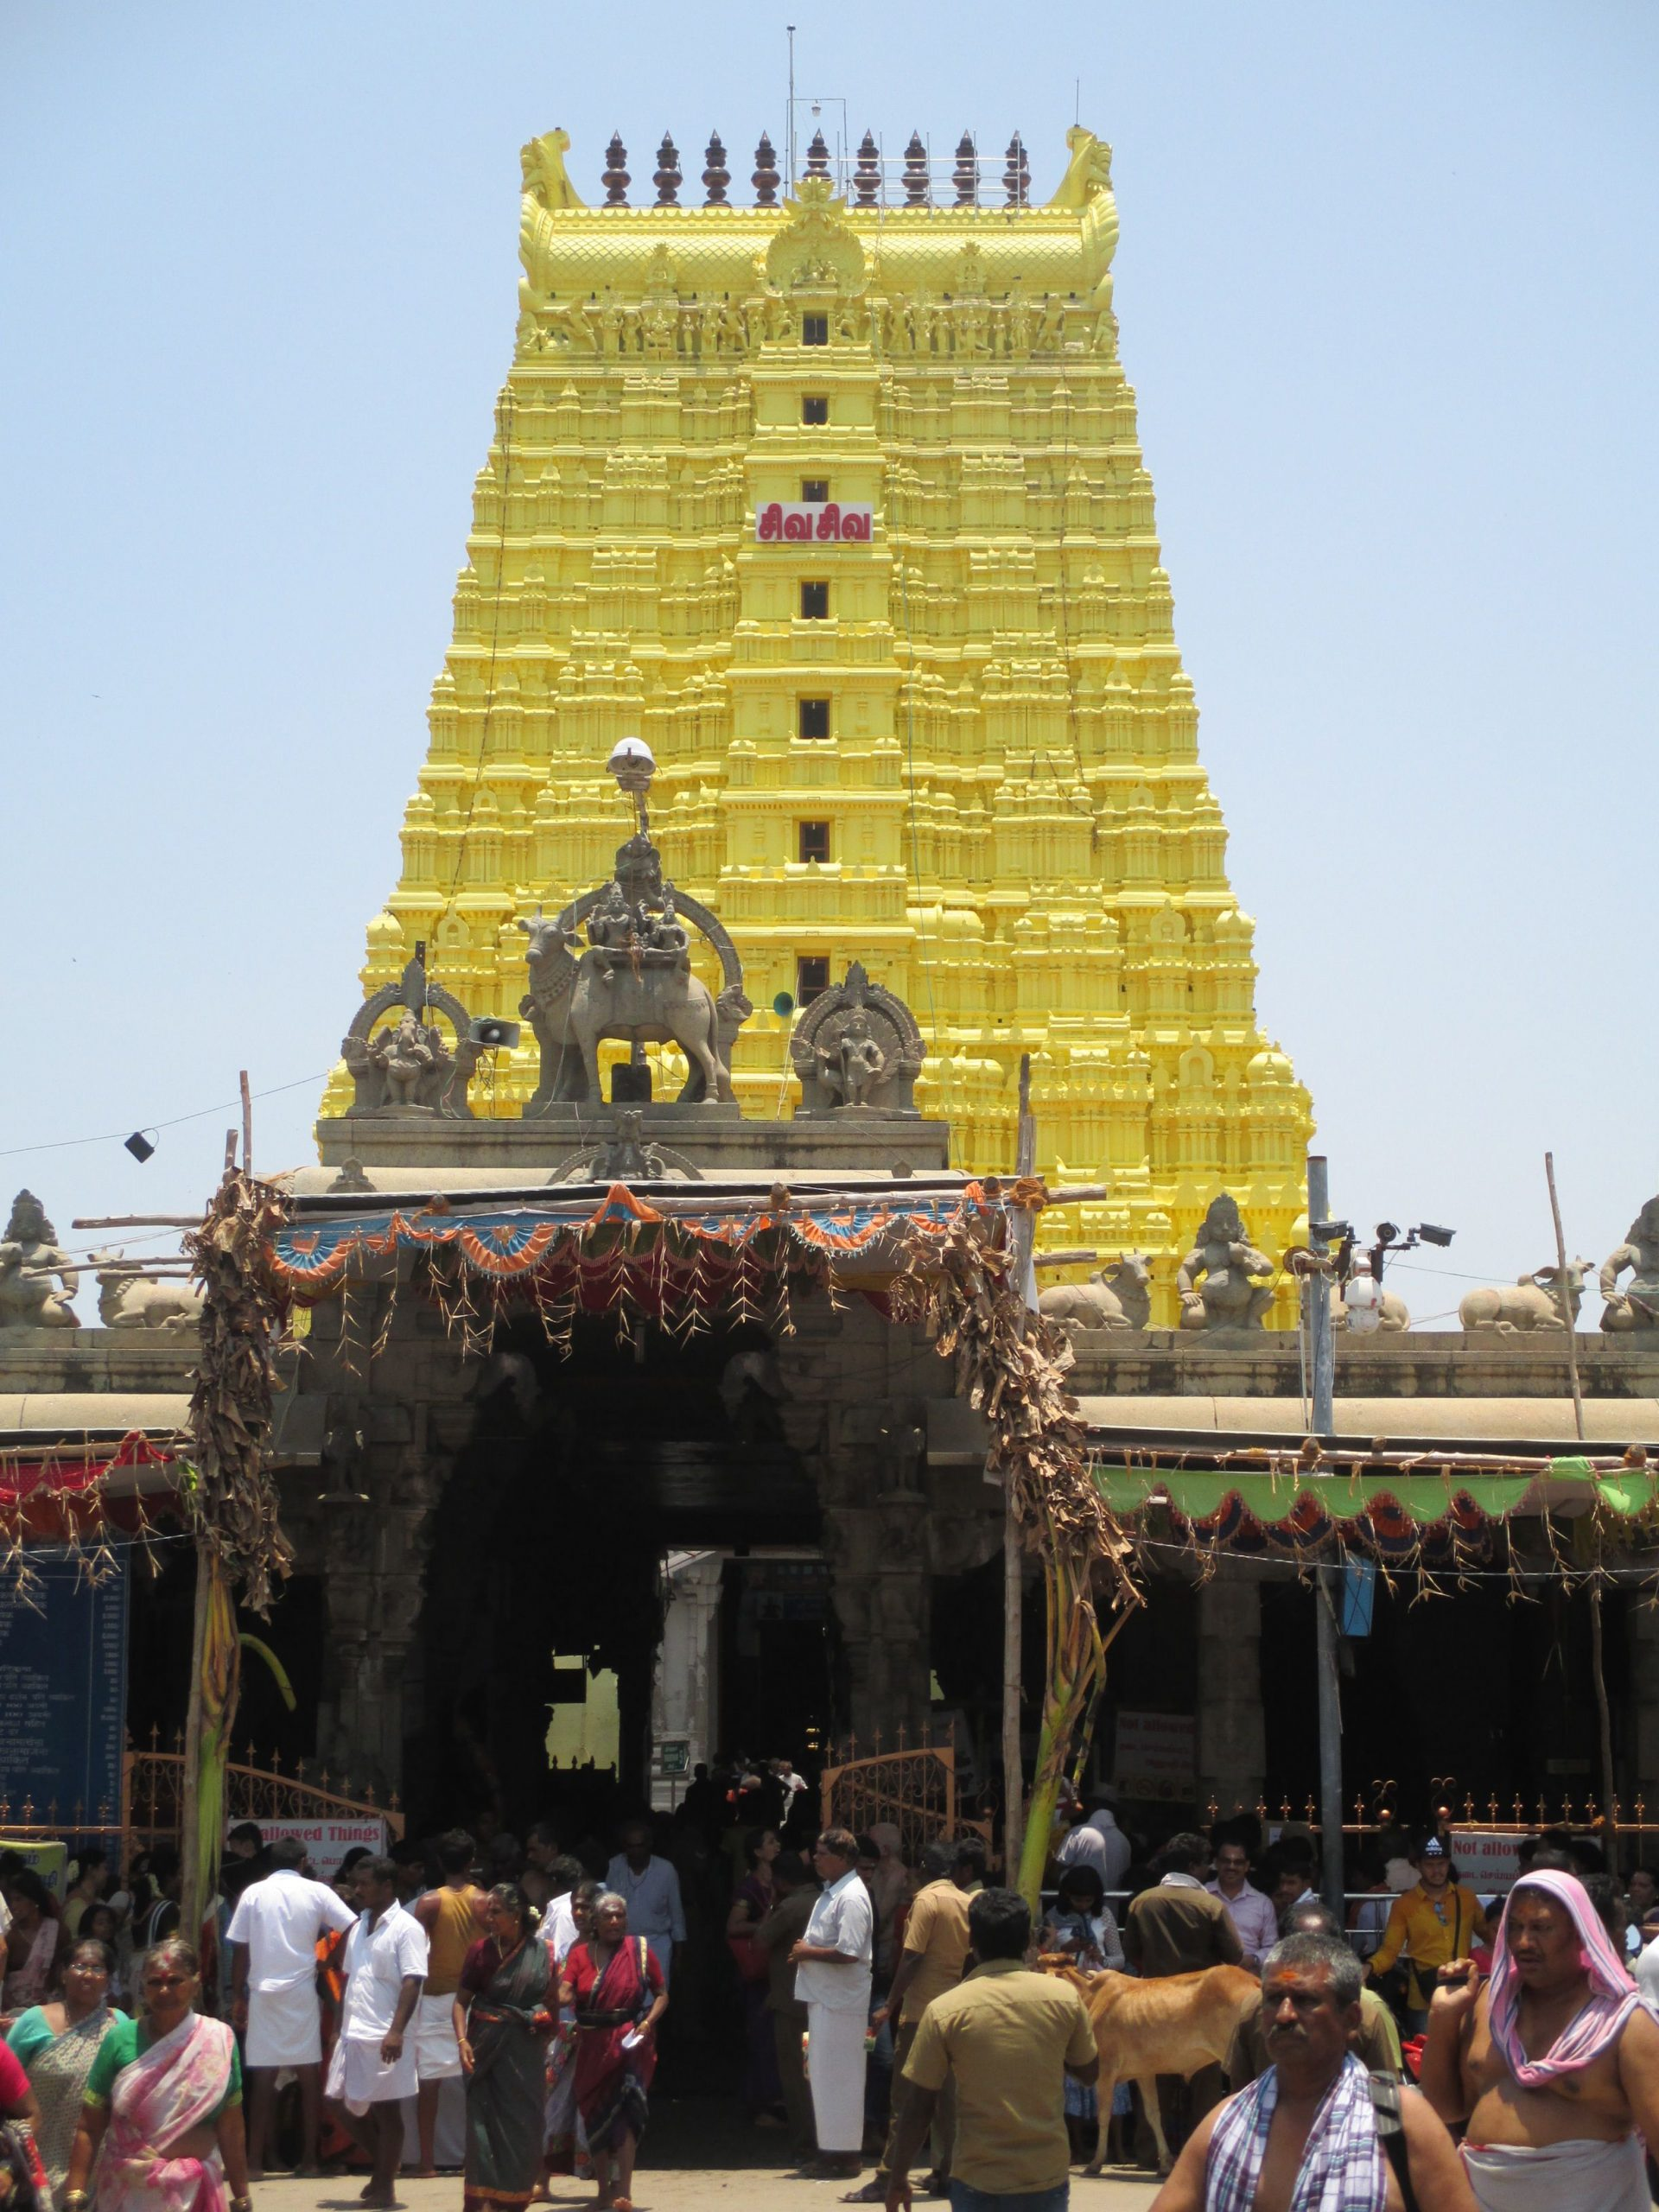 Why is the Ramanathaswamy Temple Famous?